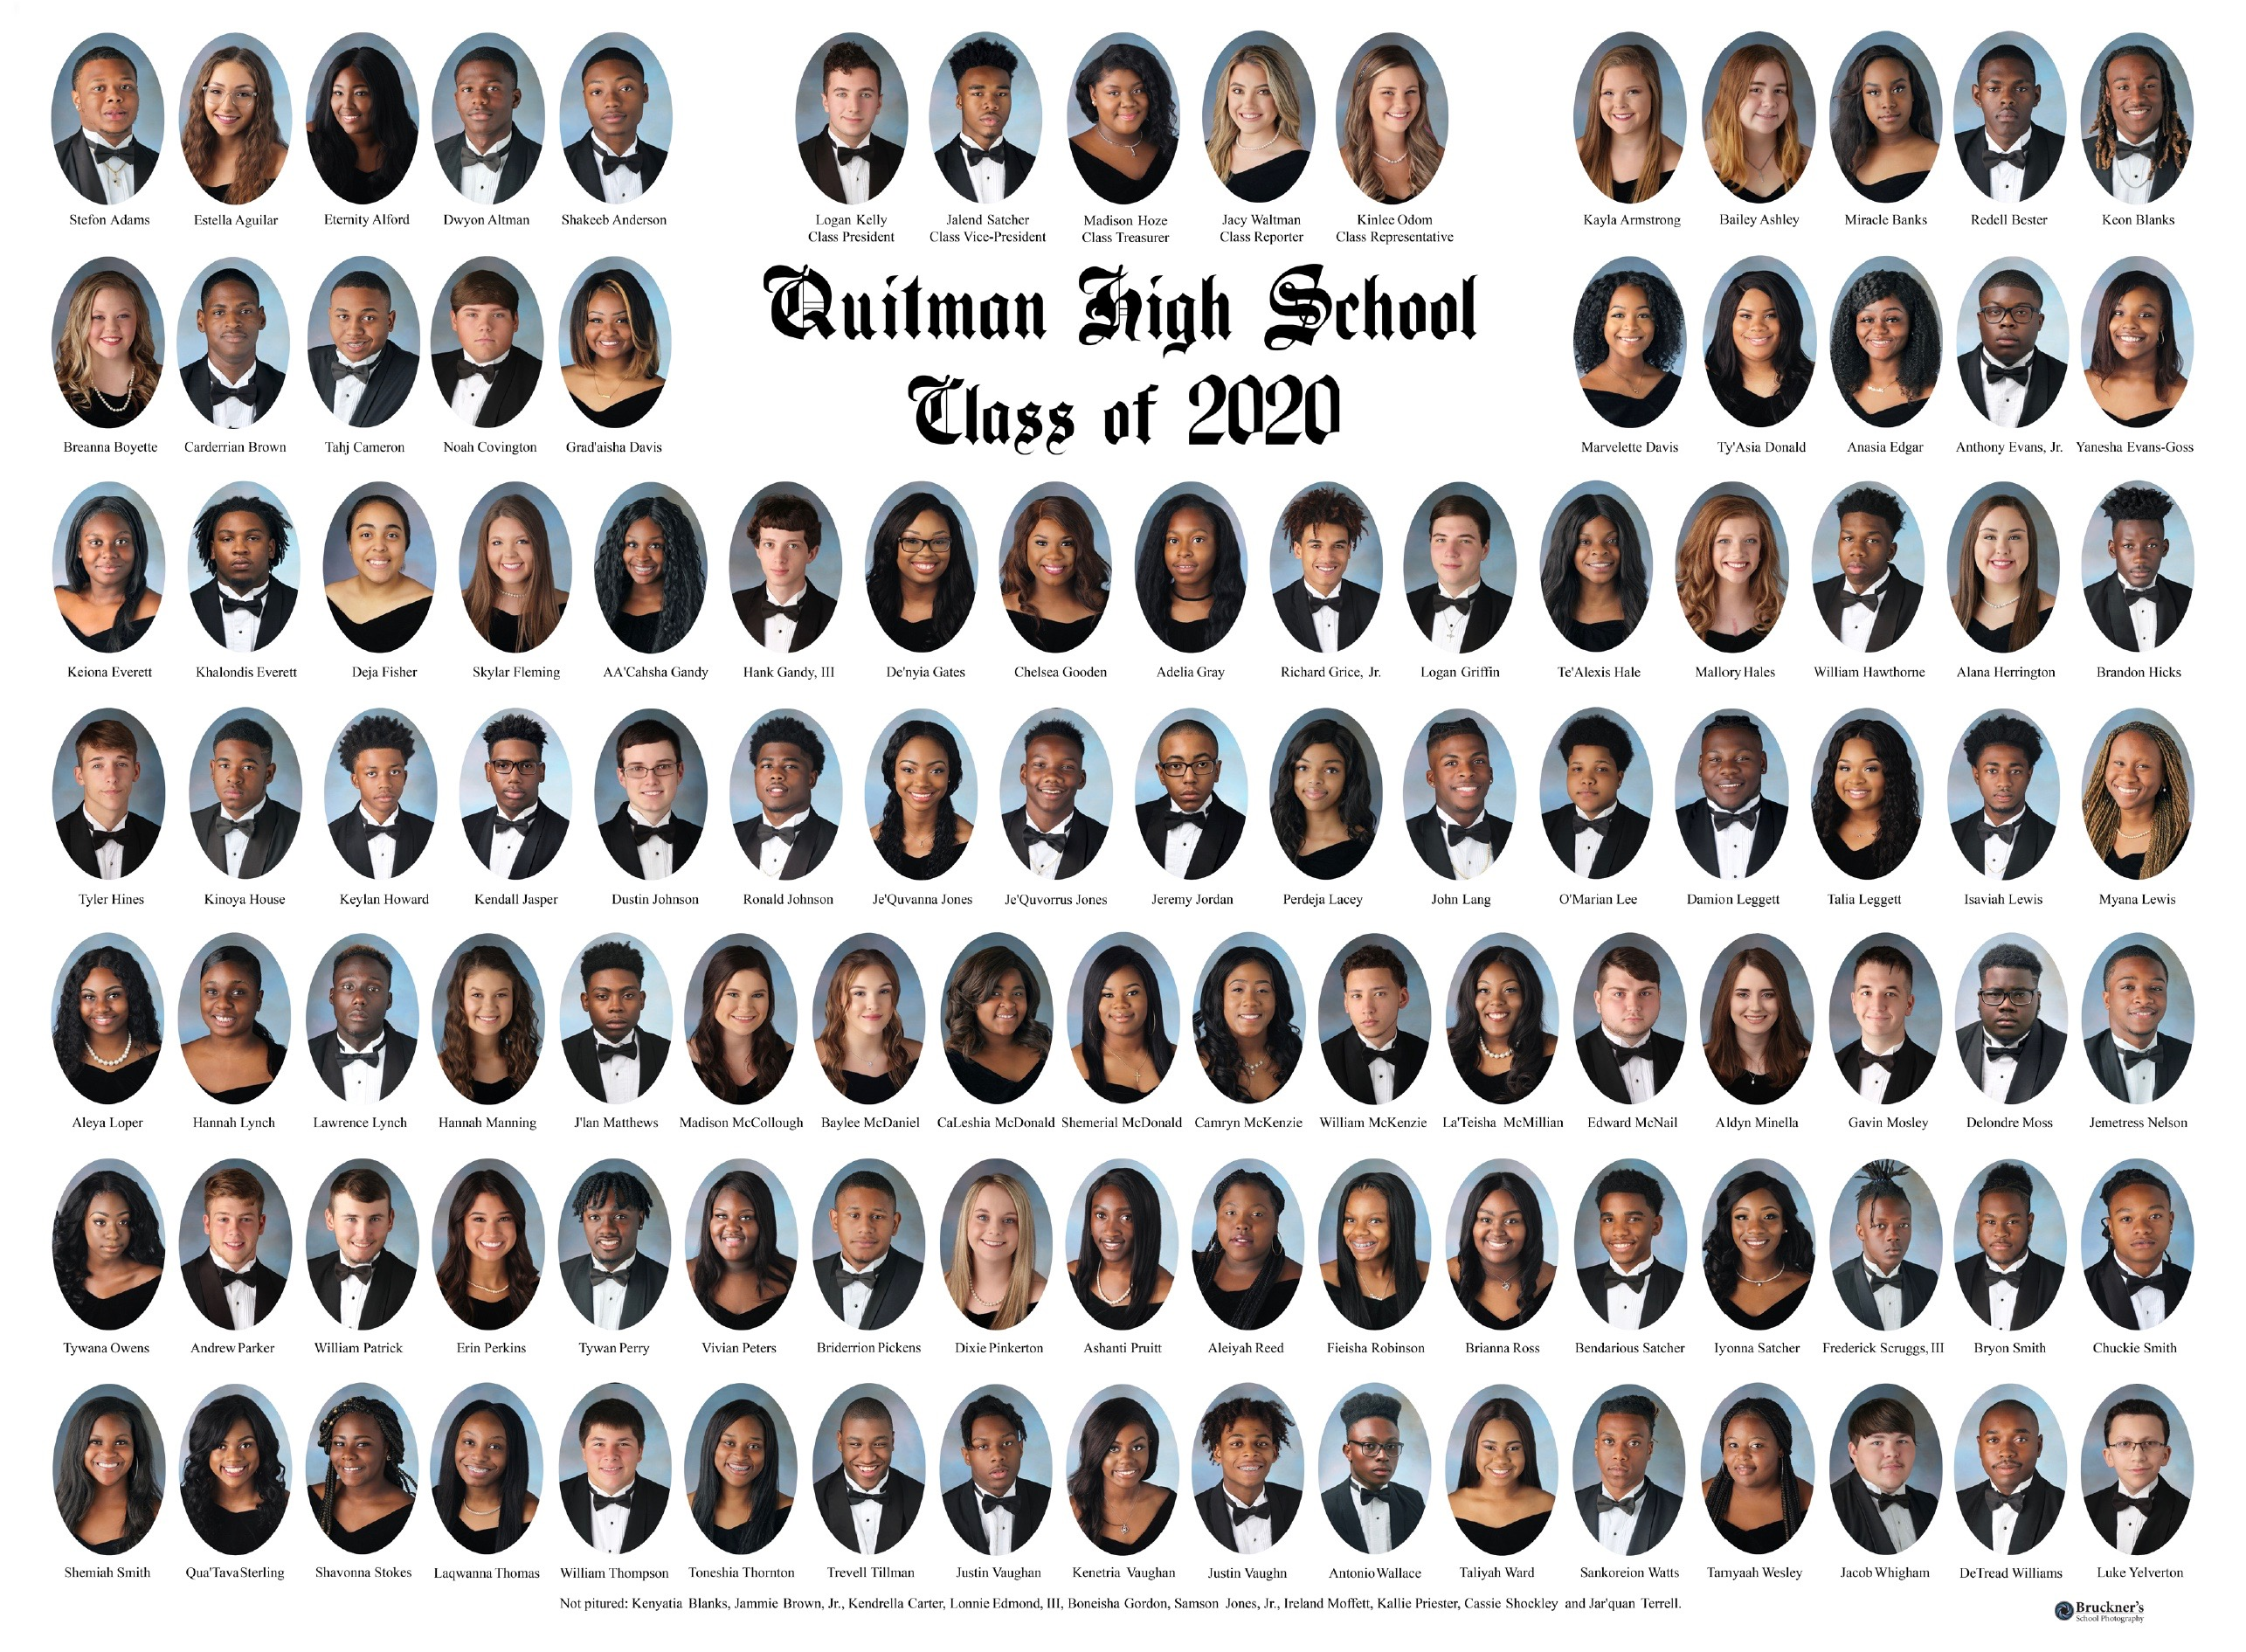 This is a composite of the QHS 2020 graduates.